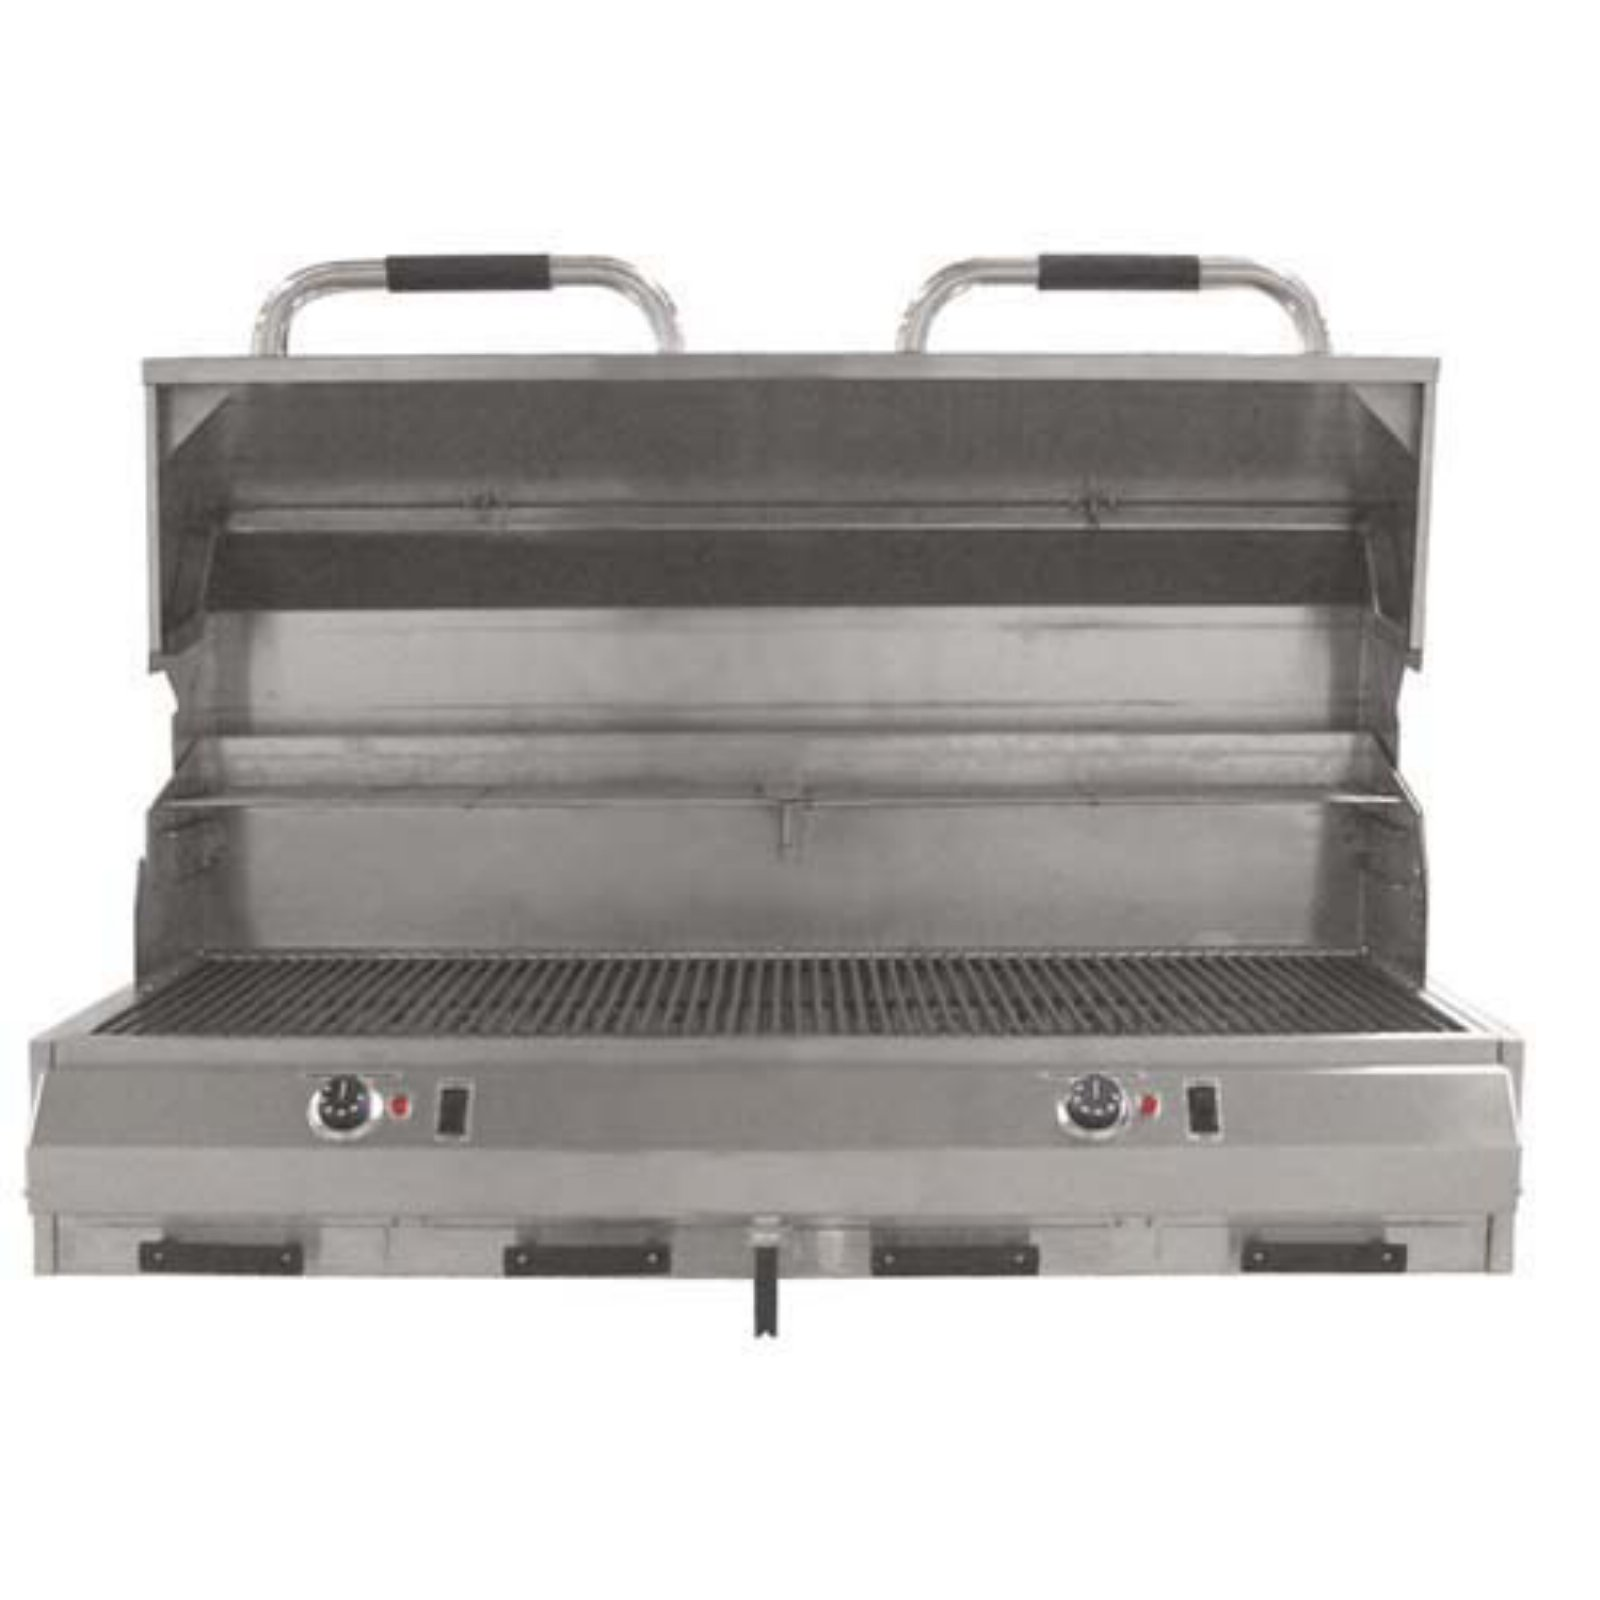 Electri-Chef Island Marine 48 in. Built-In Electric Grill by Electri - Chef Grill